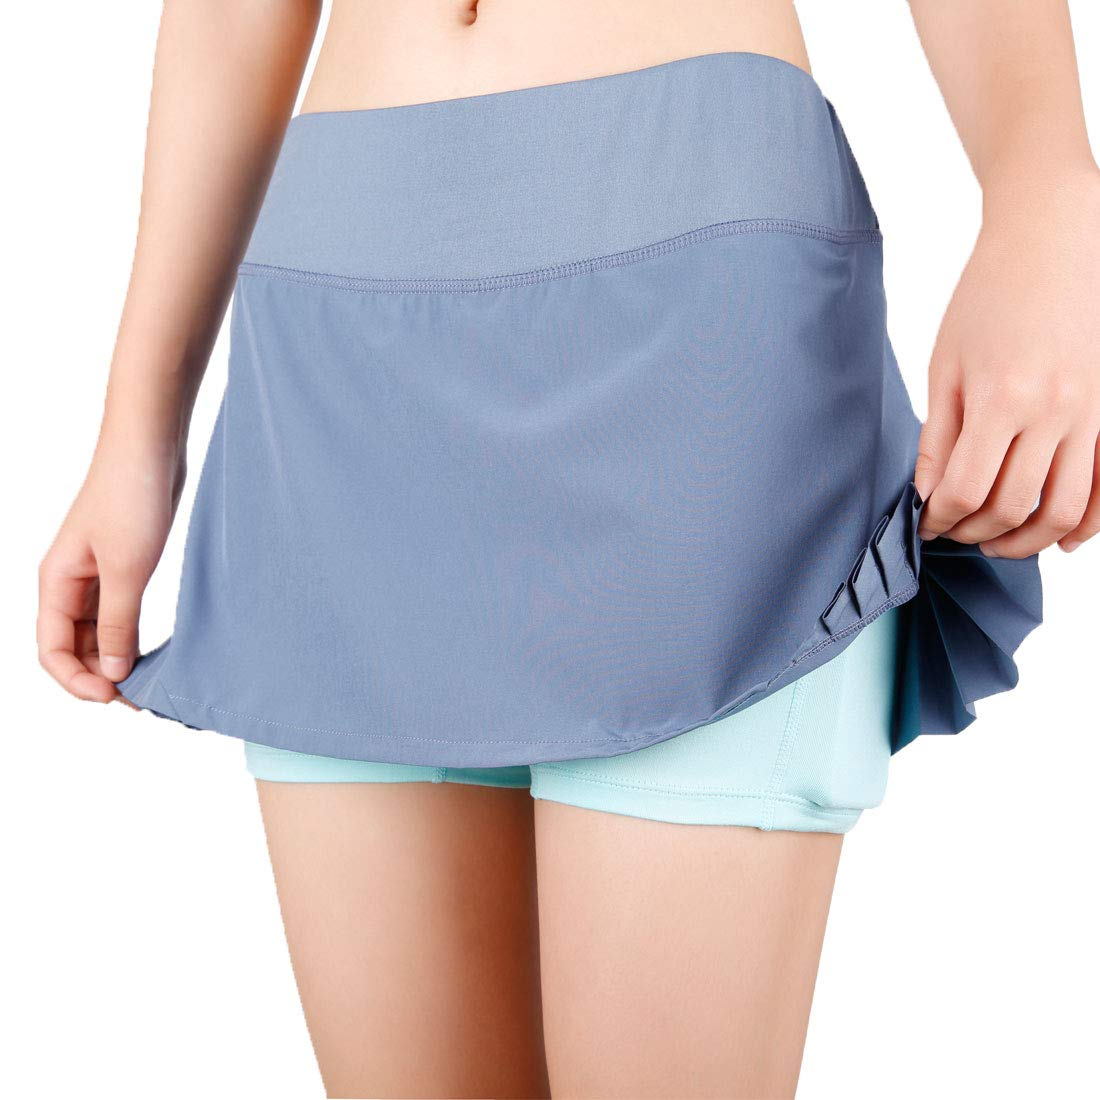 ZOANO Women's Tennis Skirt Athletic Skort with Pockets for Running Golf Workout(GREY,L/12)